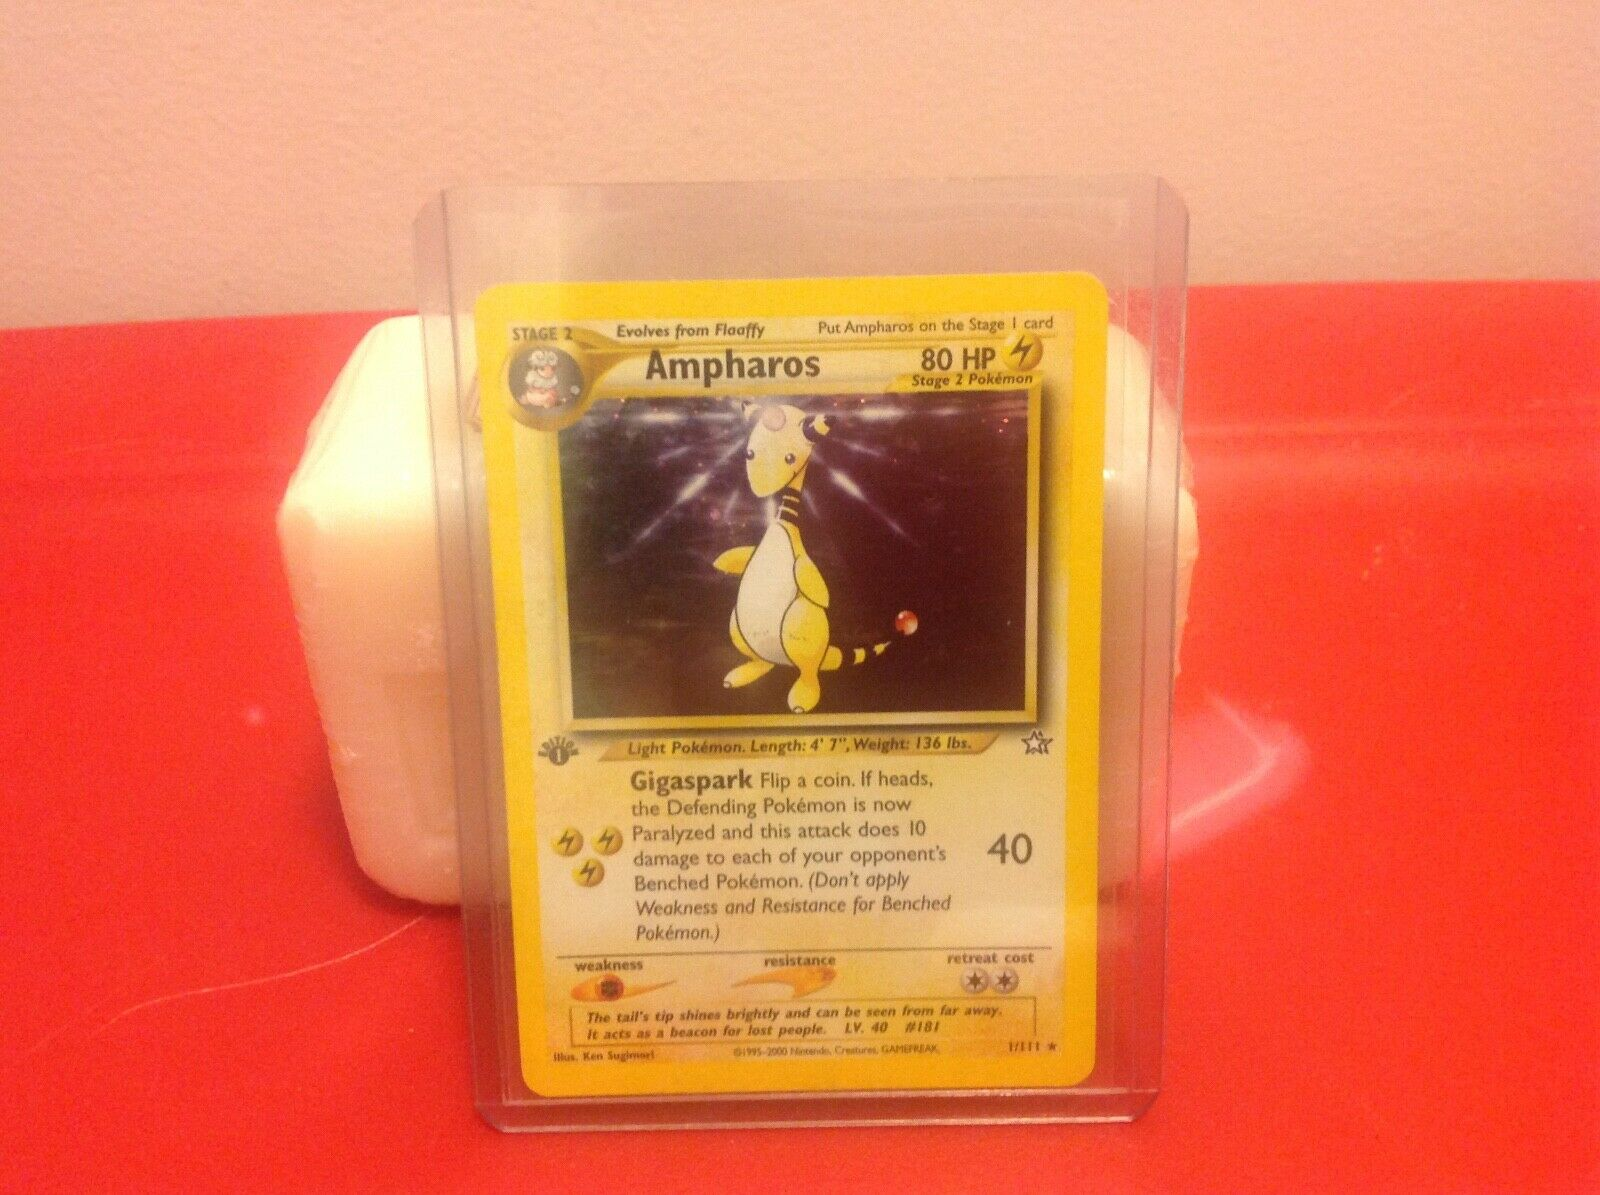 1995 Ampharos Holo Pokemon Card 1st Edition-1 111 (Mint Condition)